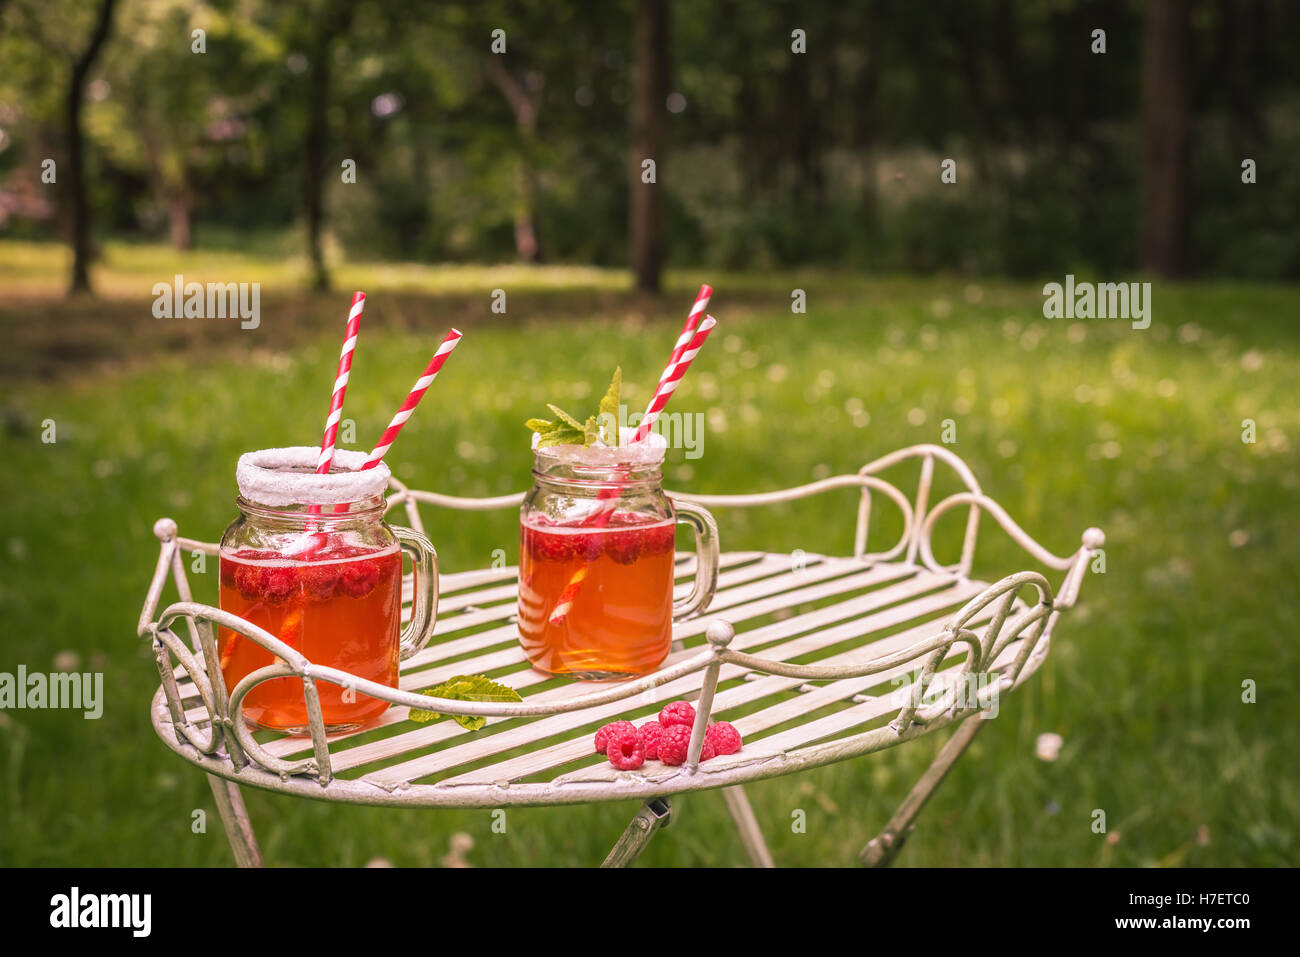 Summer drinks outdoor with vintage tone - plenty of room for copy space - Stock Image